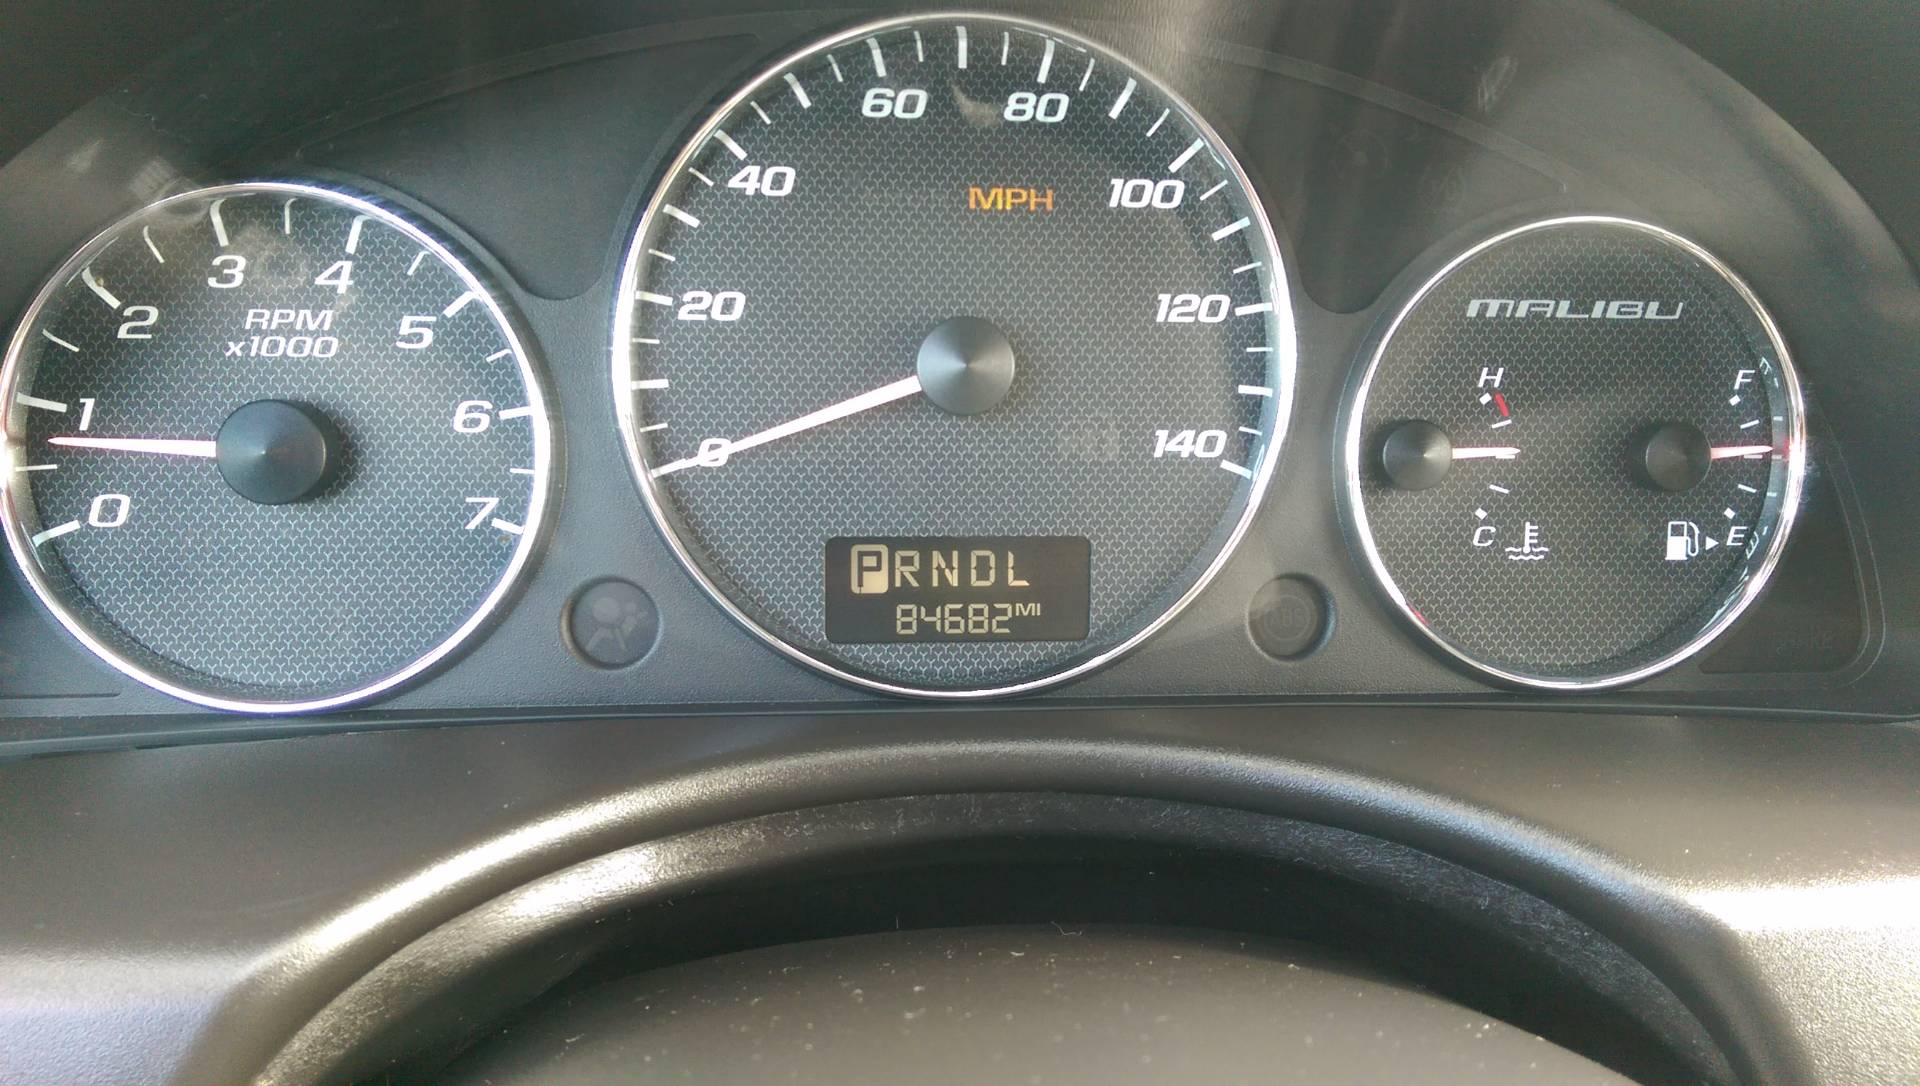 2007 Chevrolet Malibu LTZ V6 in Rapid City, South Dakota